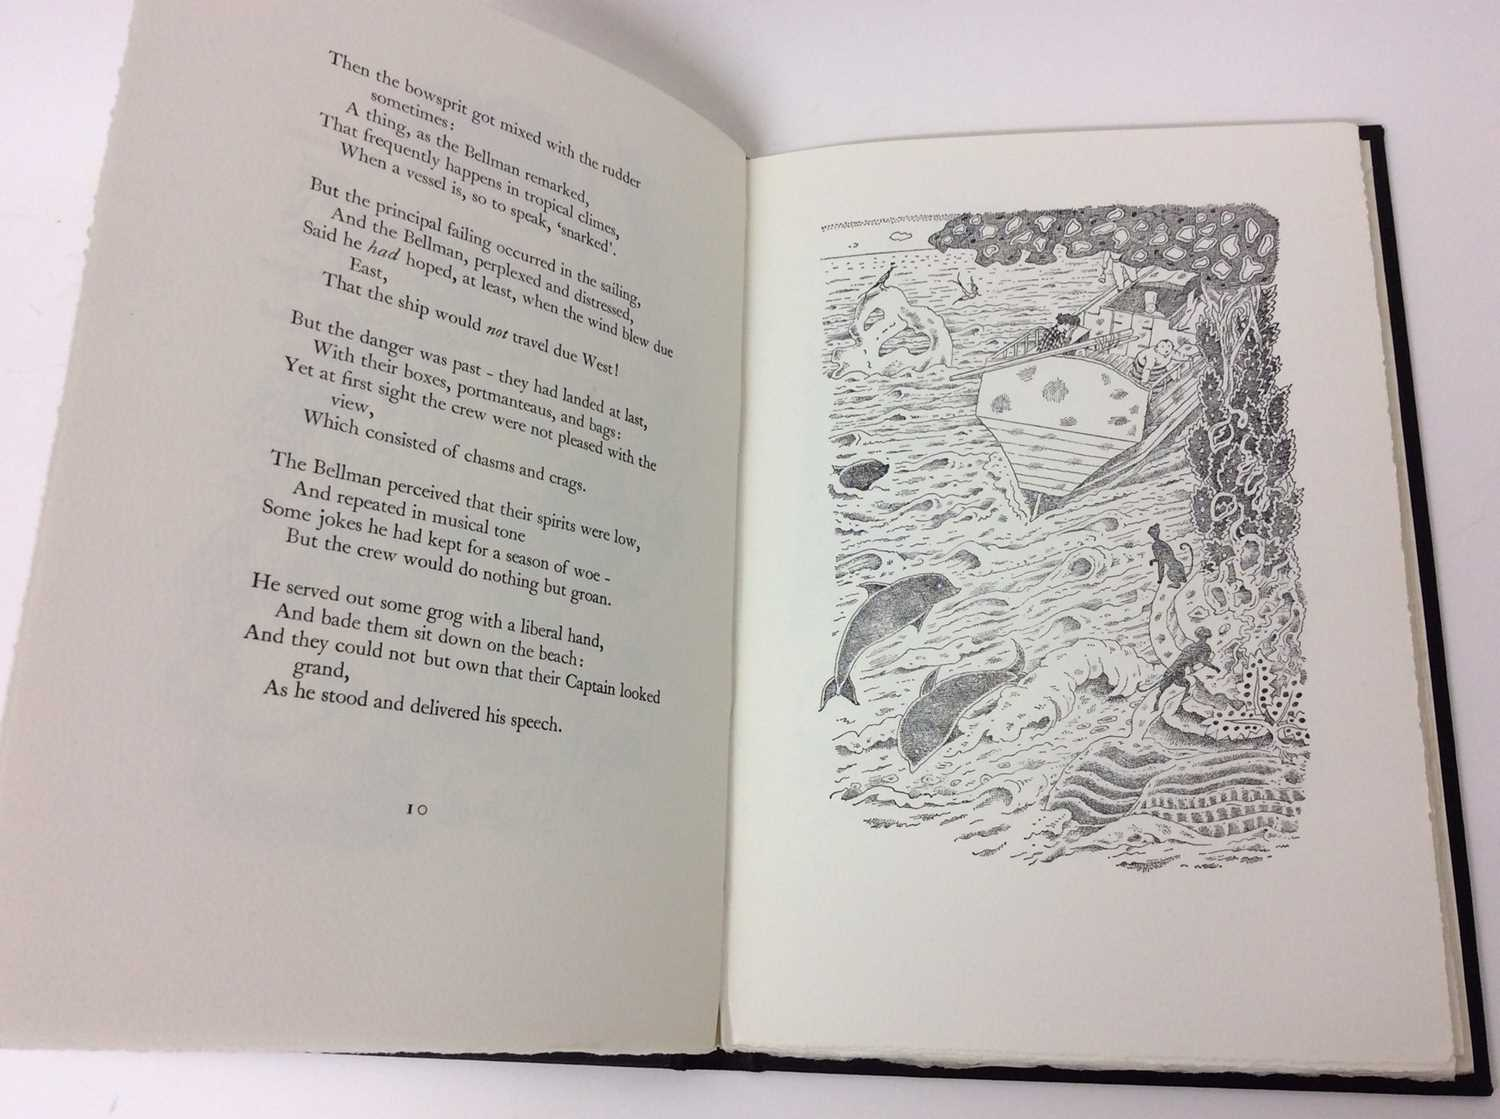 Lewis Carroll - The Hunting of the Snark, Whittington Press 1975, 404/750 - Image 7 of 10